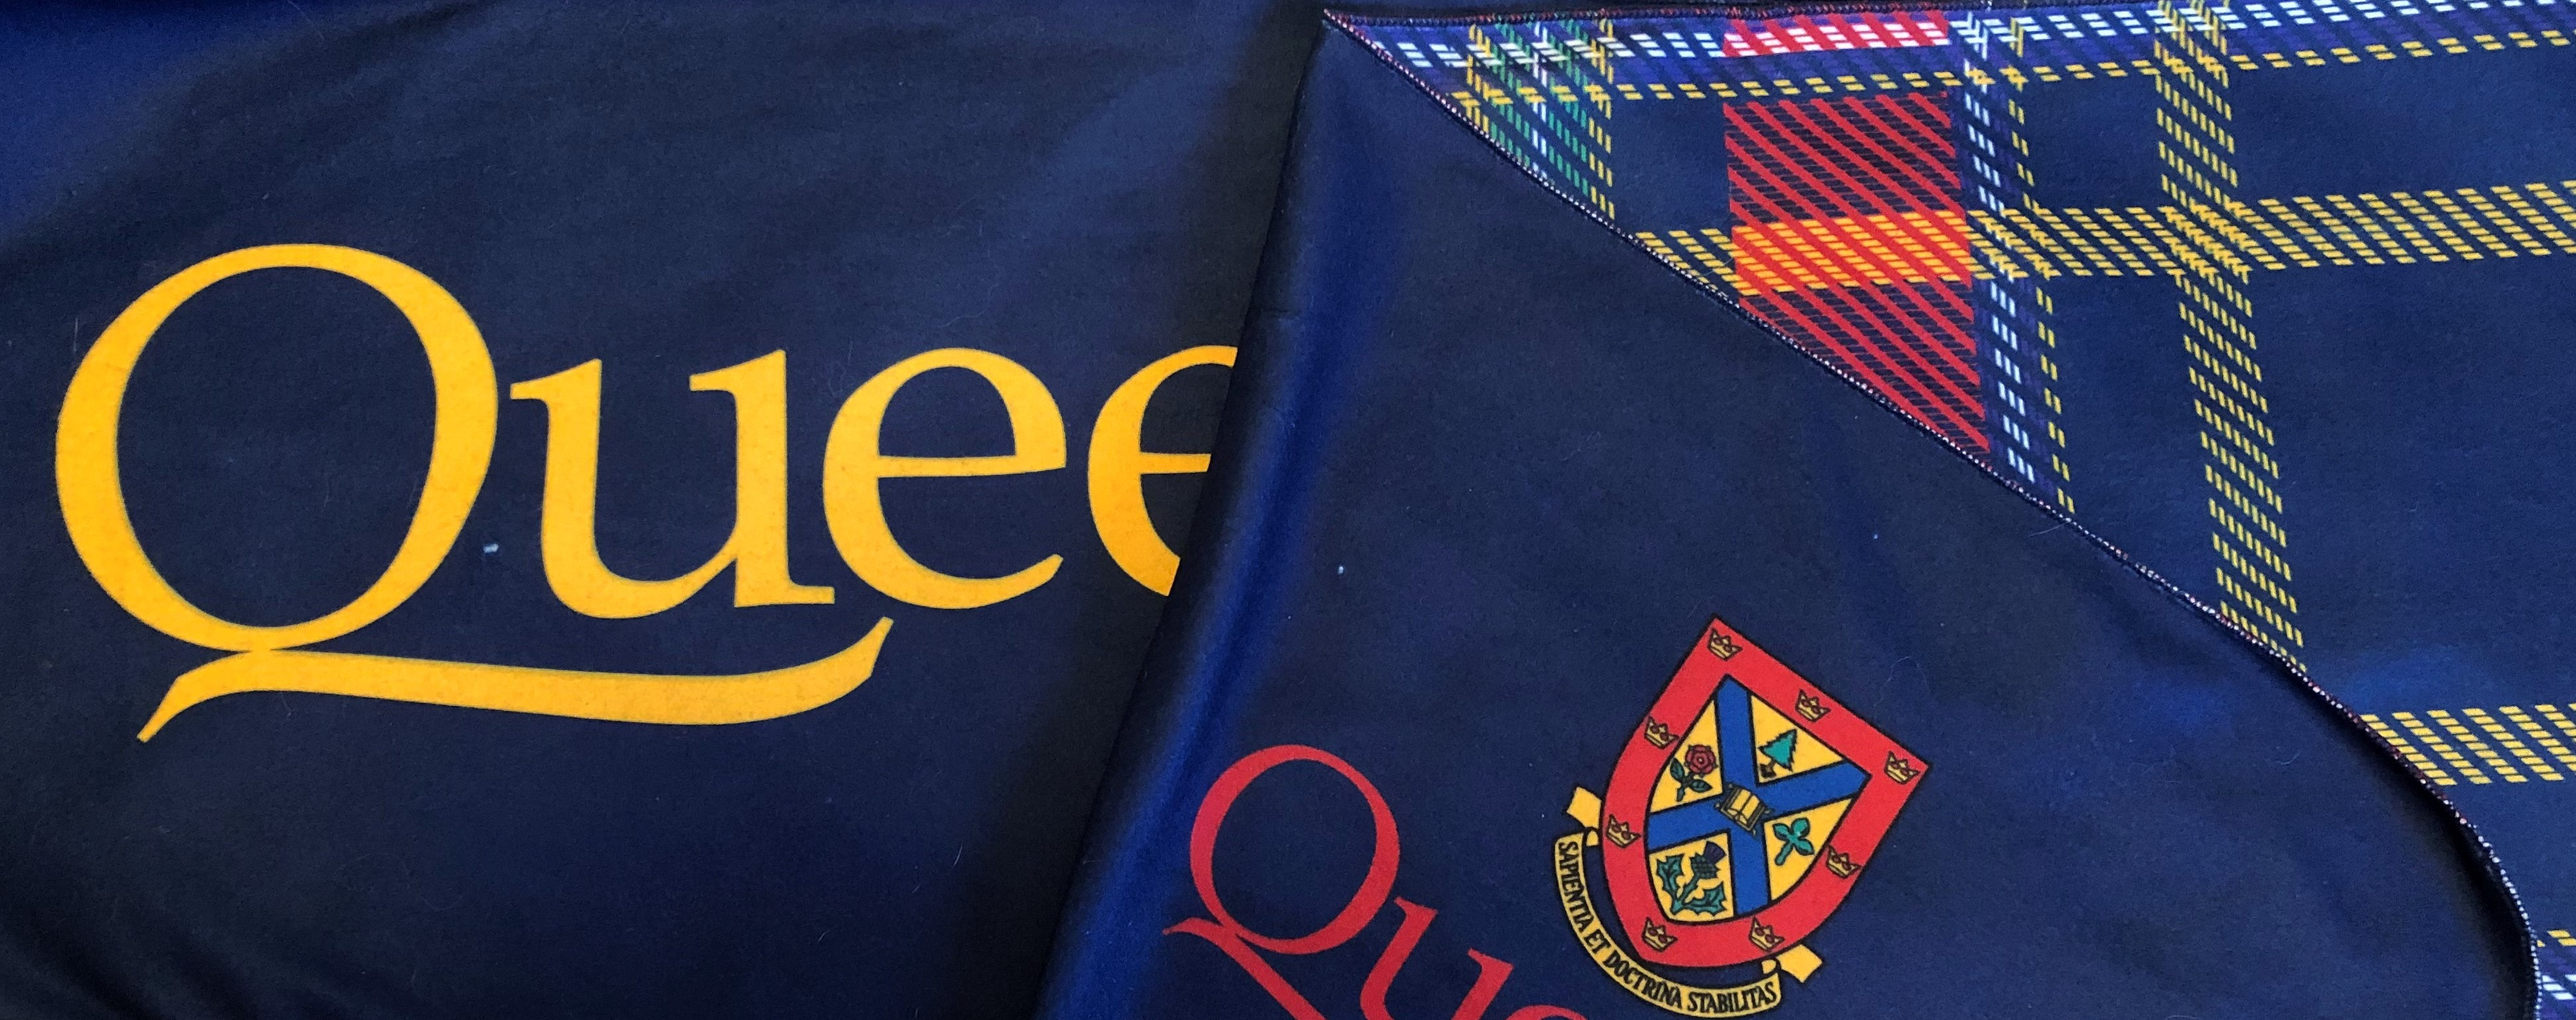 Queen's Microfibre Plaid Scarf image